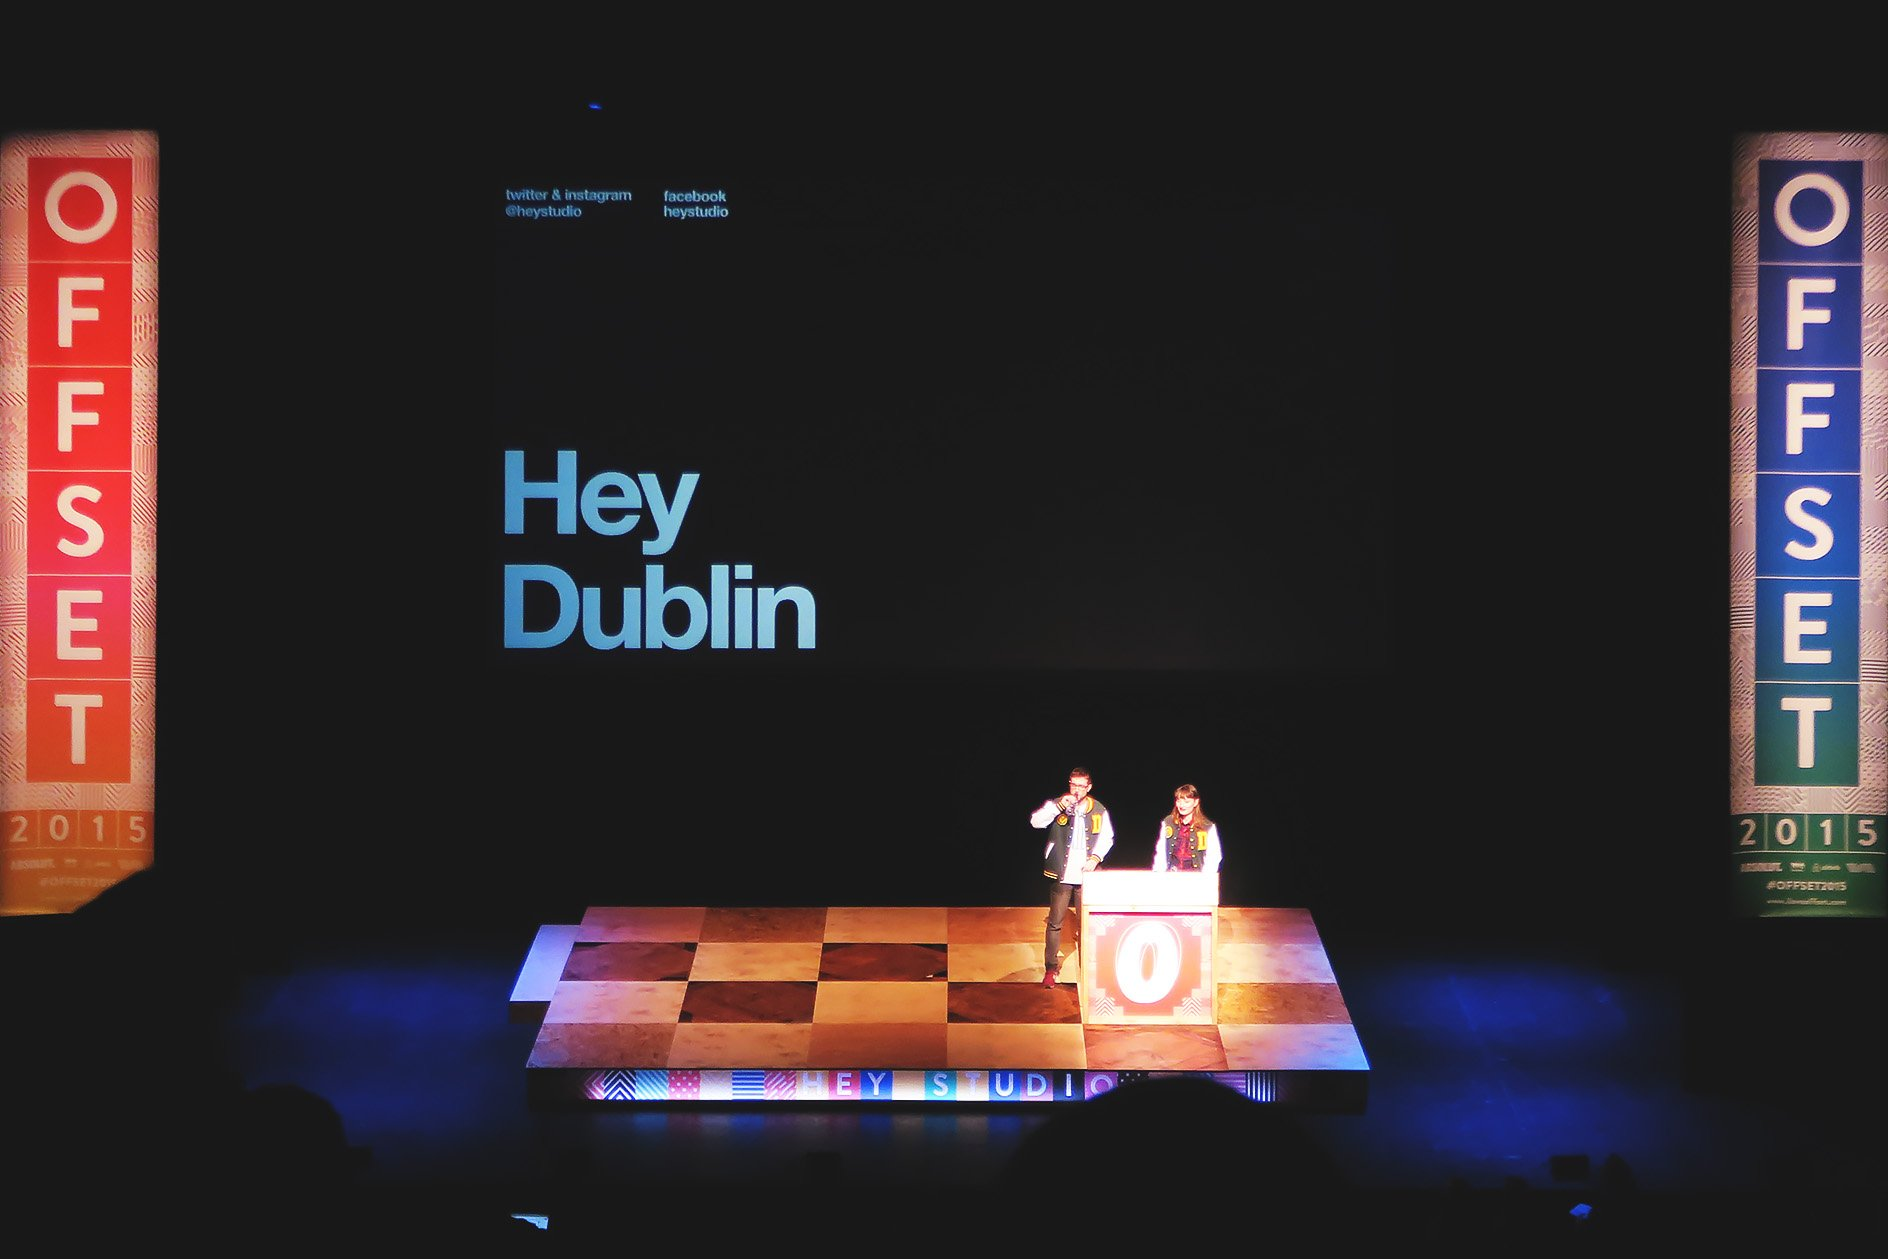 Hey Studio at OFFSET 2015 – Hey Dublin